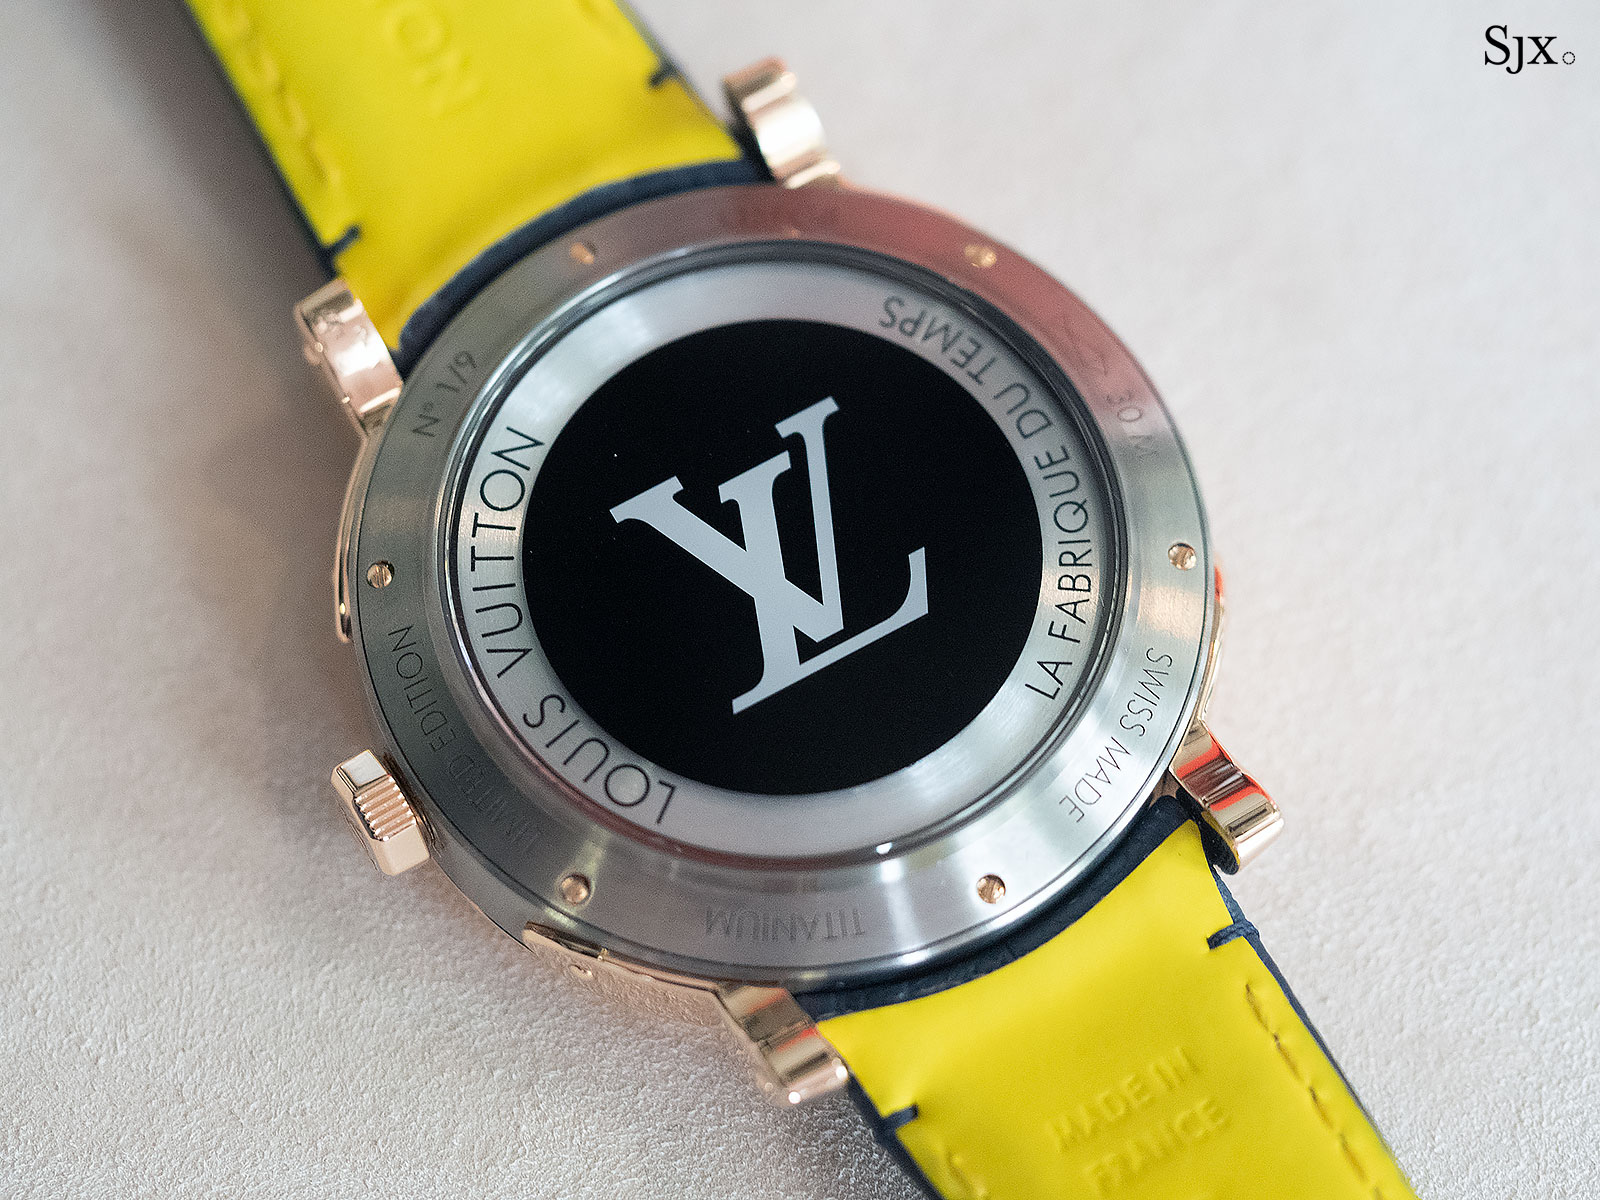 Louis Vuitton Escale Spin Time titanium gold 6